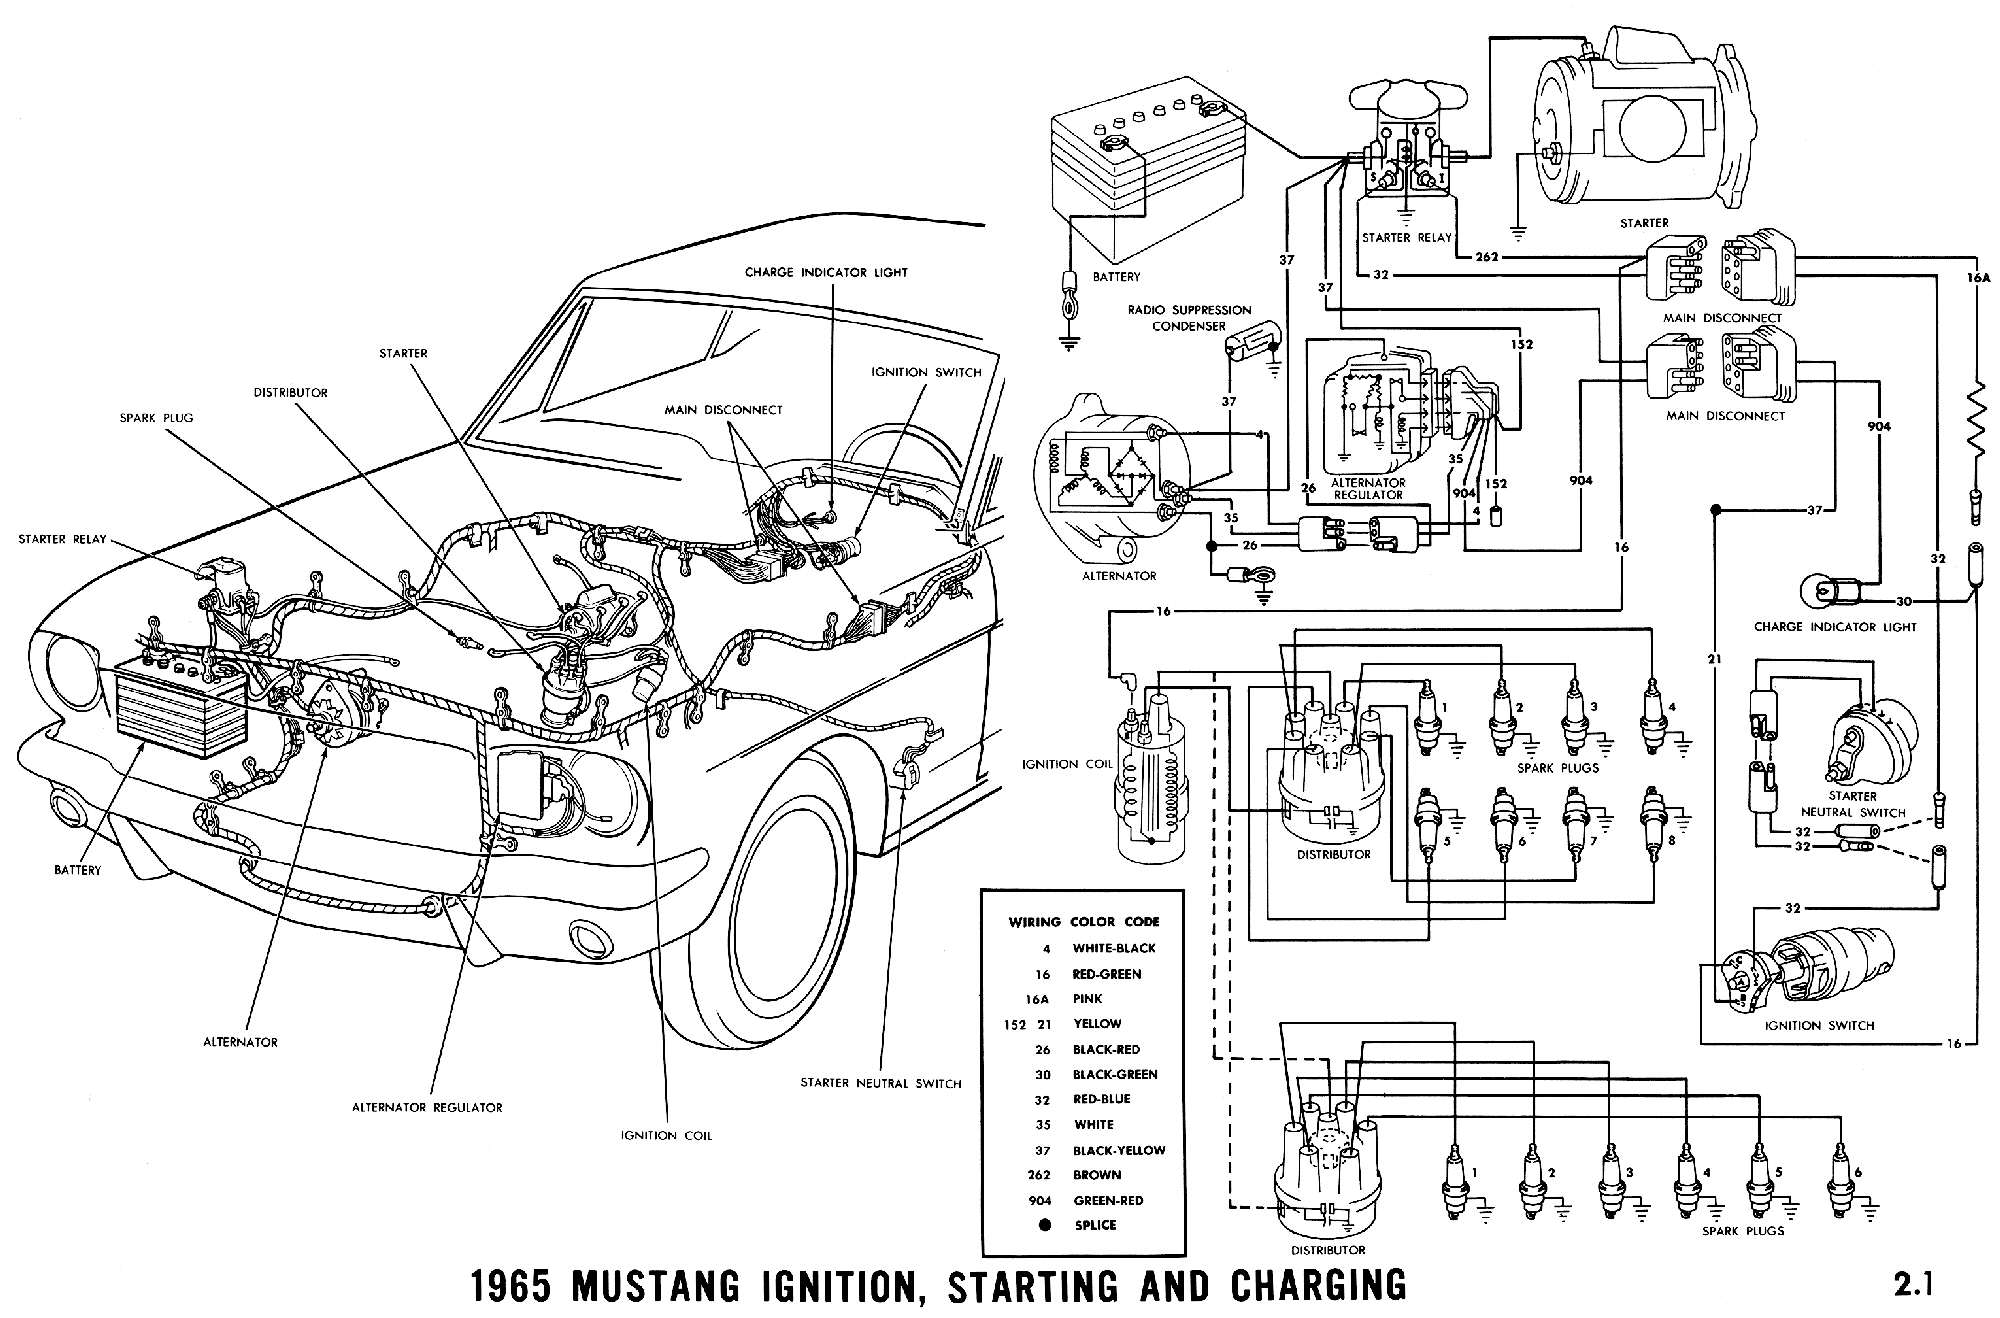 1966 Ford Falcon Wiring Manual Electrical Diagram 1969 Ranchero 1965 Mustang Diagrams Average Joe Restoration Rh Averagejoerestoration Com 1967